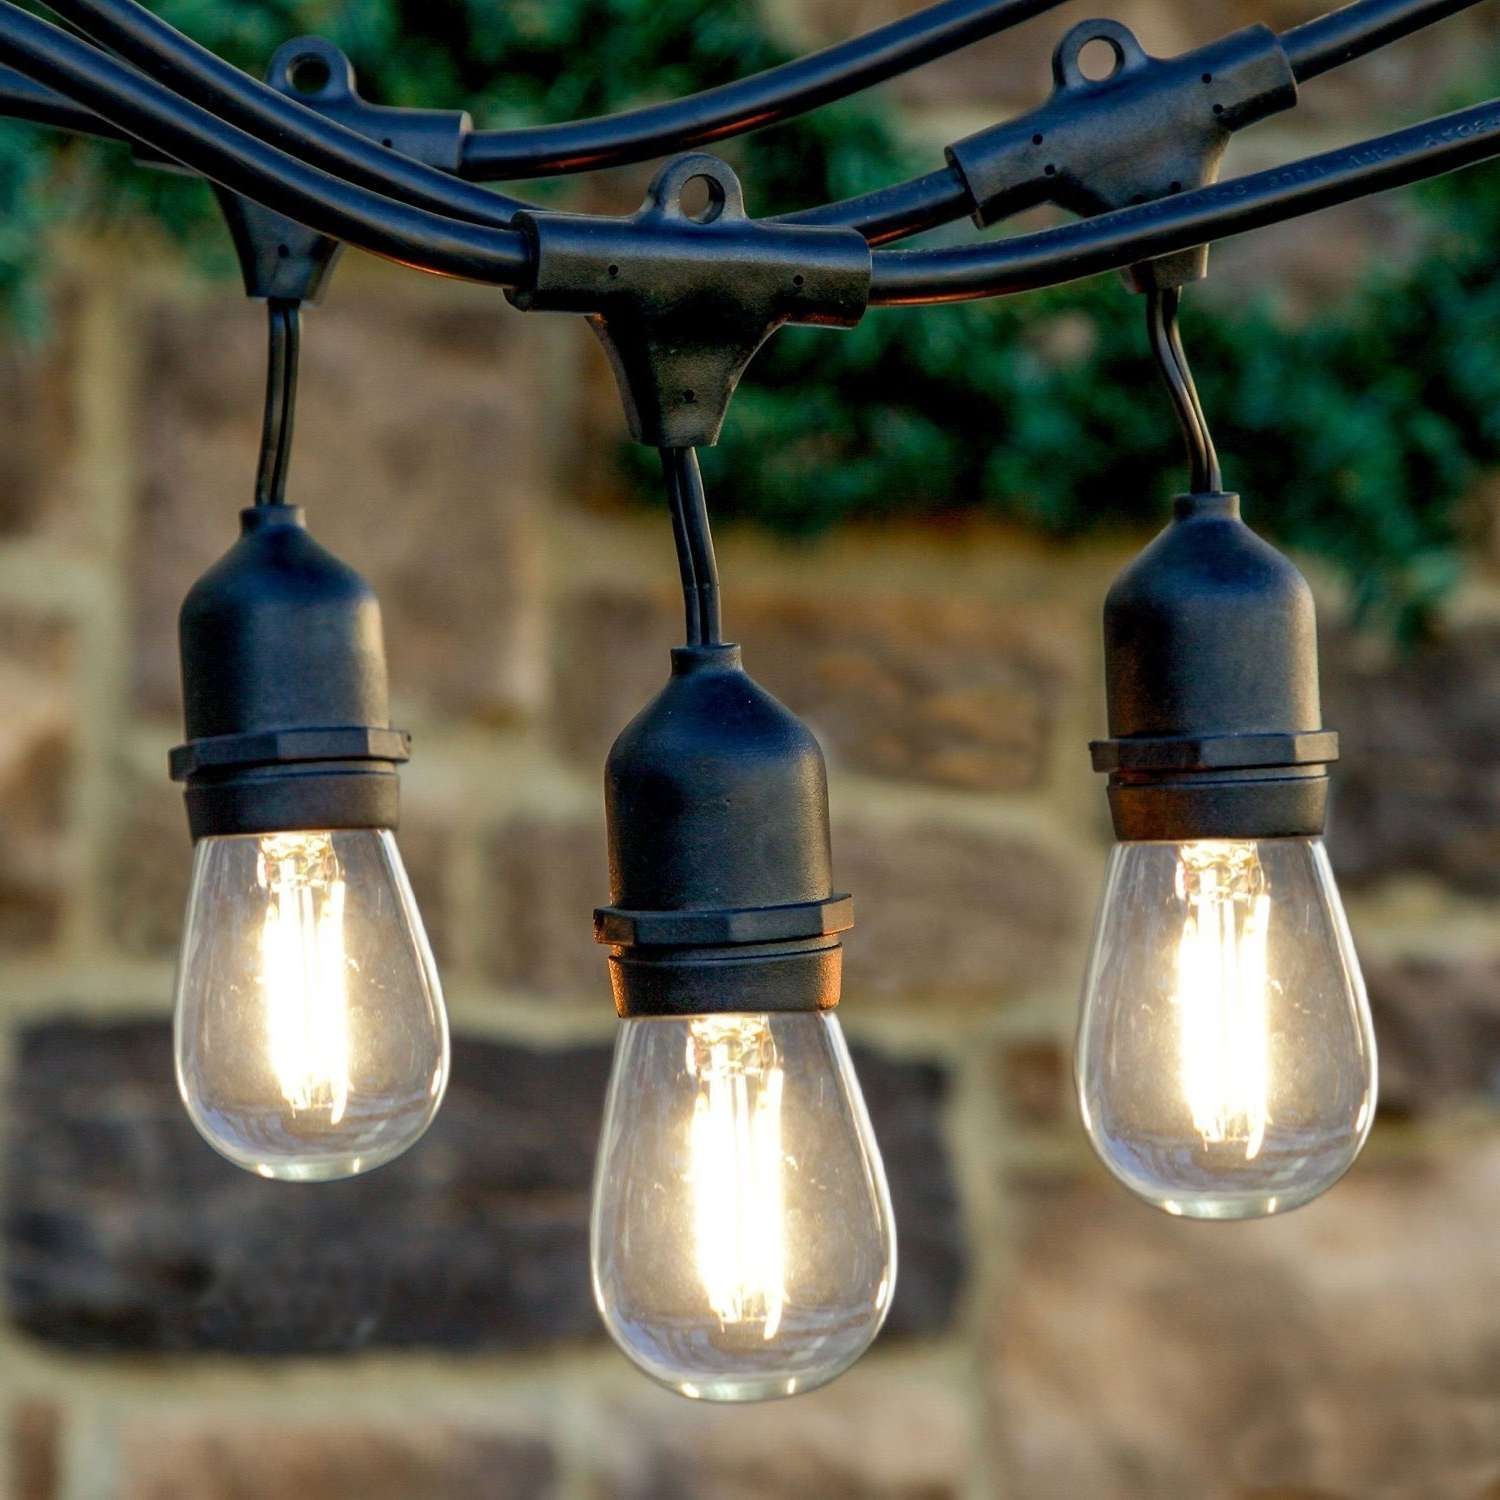 Most Popular Newhouse Lighting 48 Foot Outdoor String Lights, Led Bulbs Included Regarding Outdoor String Lanterns (View 9 of 20)